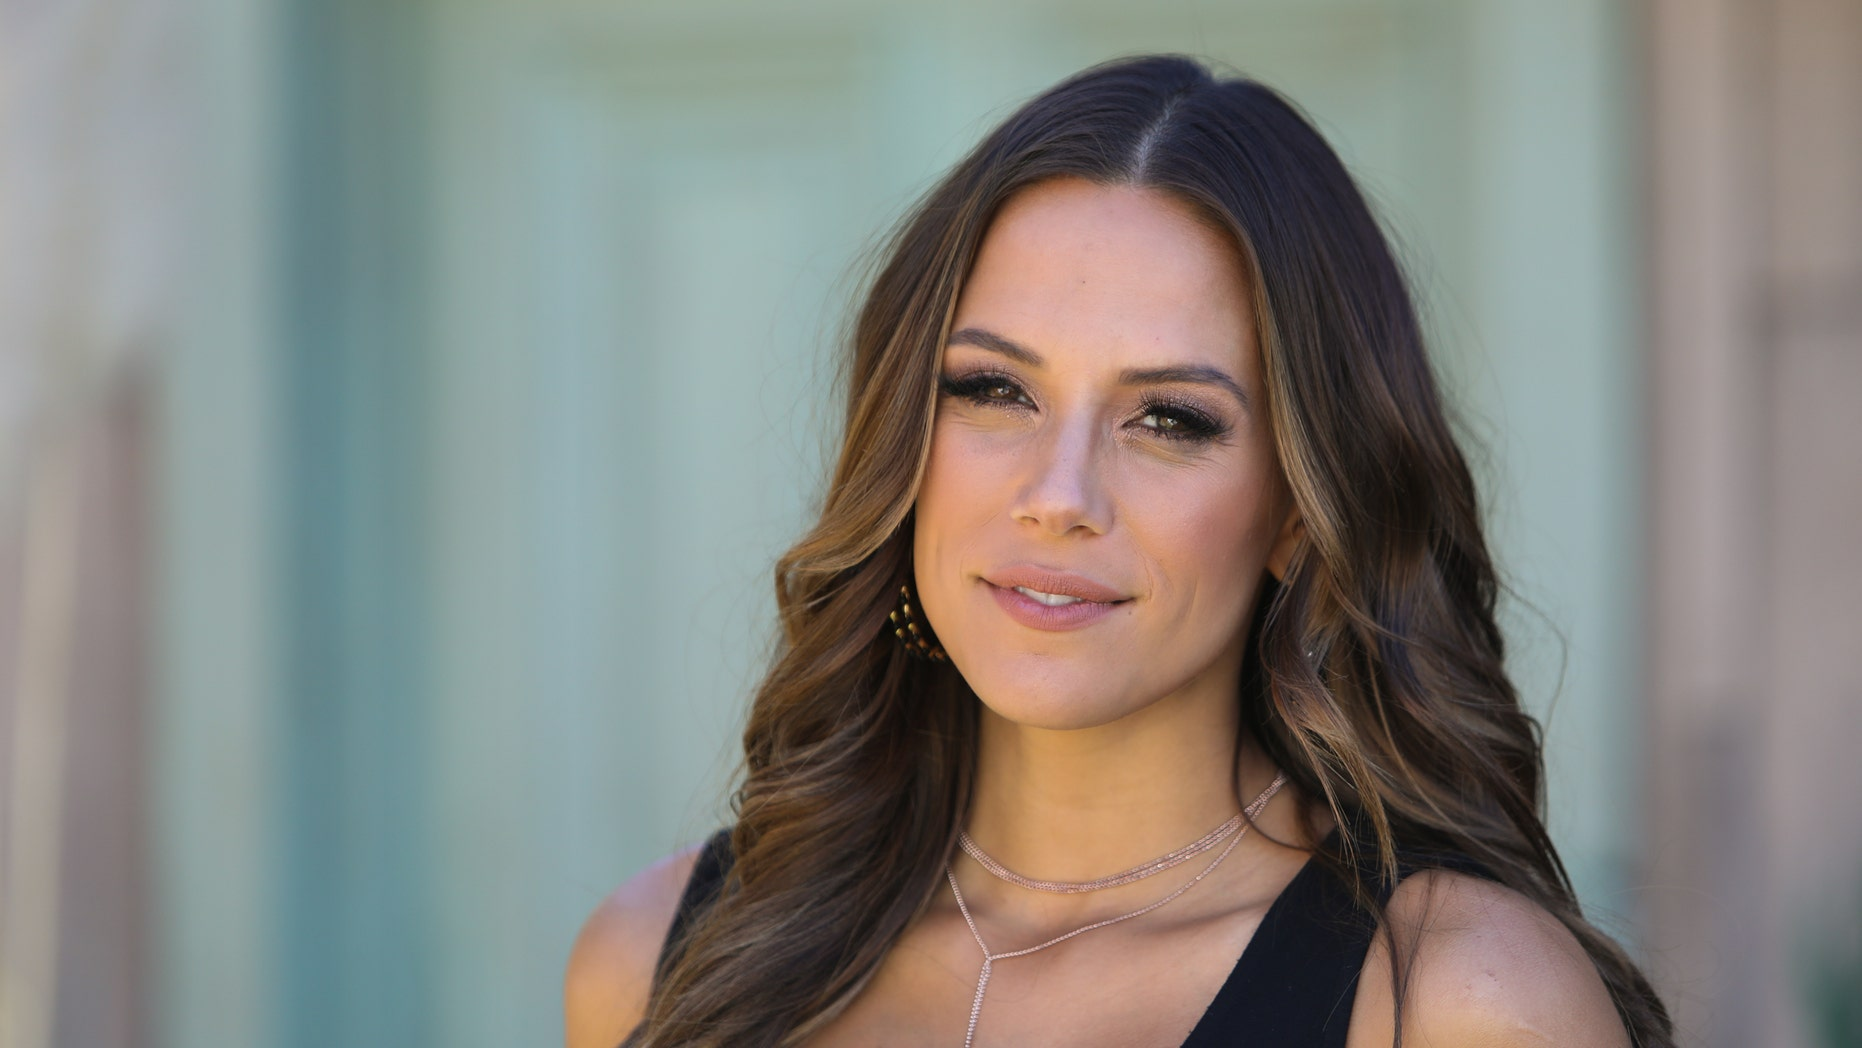 Jana Kramer vented her frustration with body critics following her pregnancy.